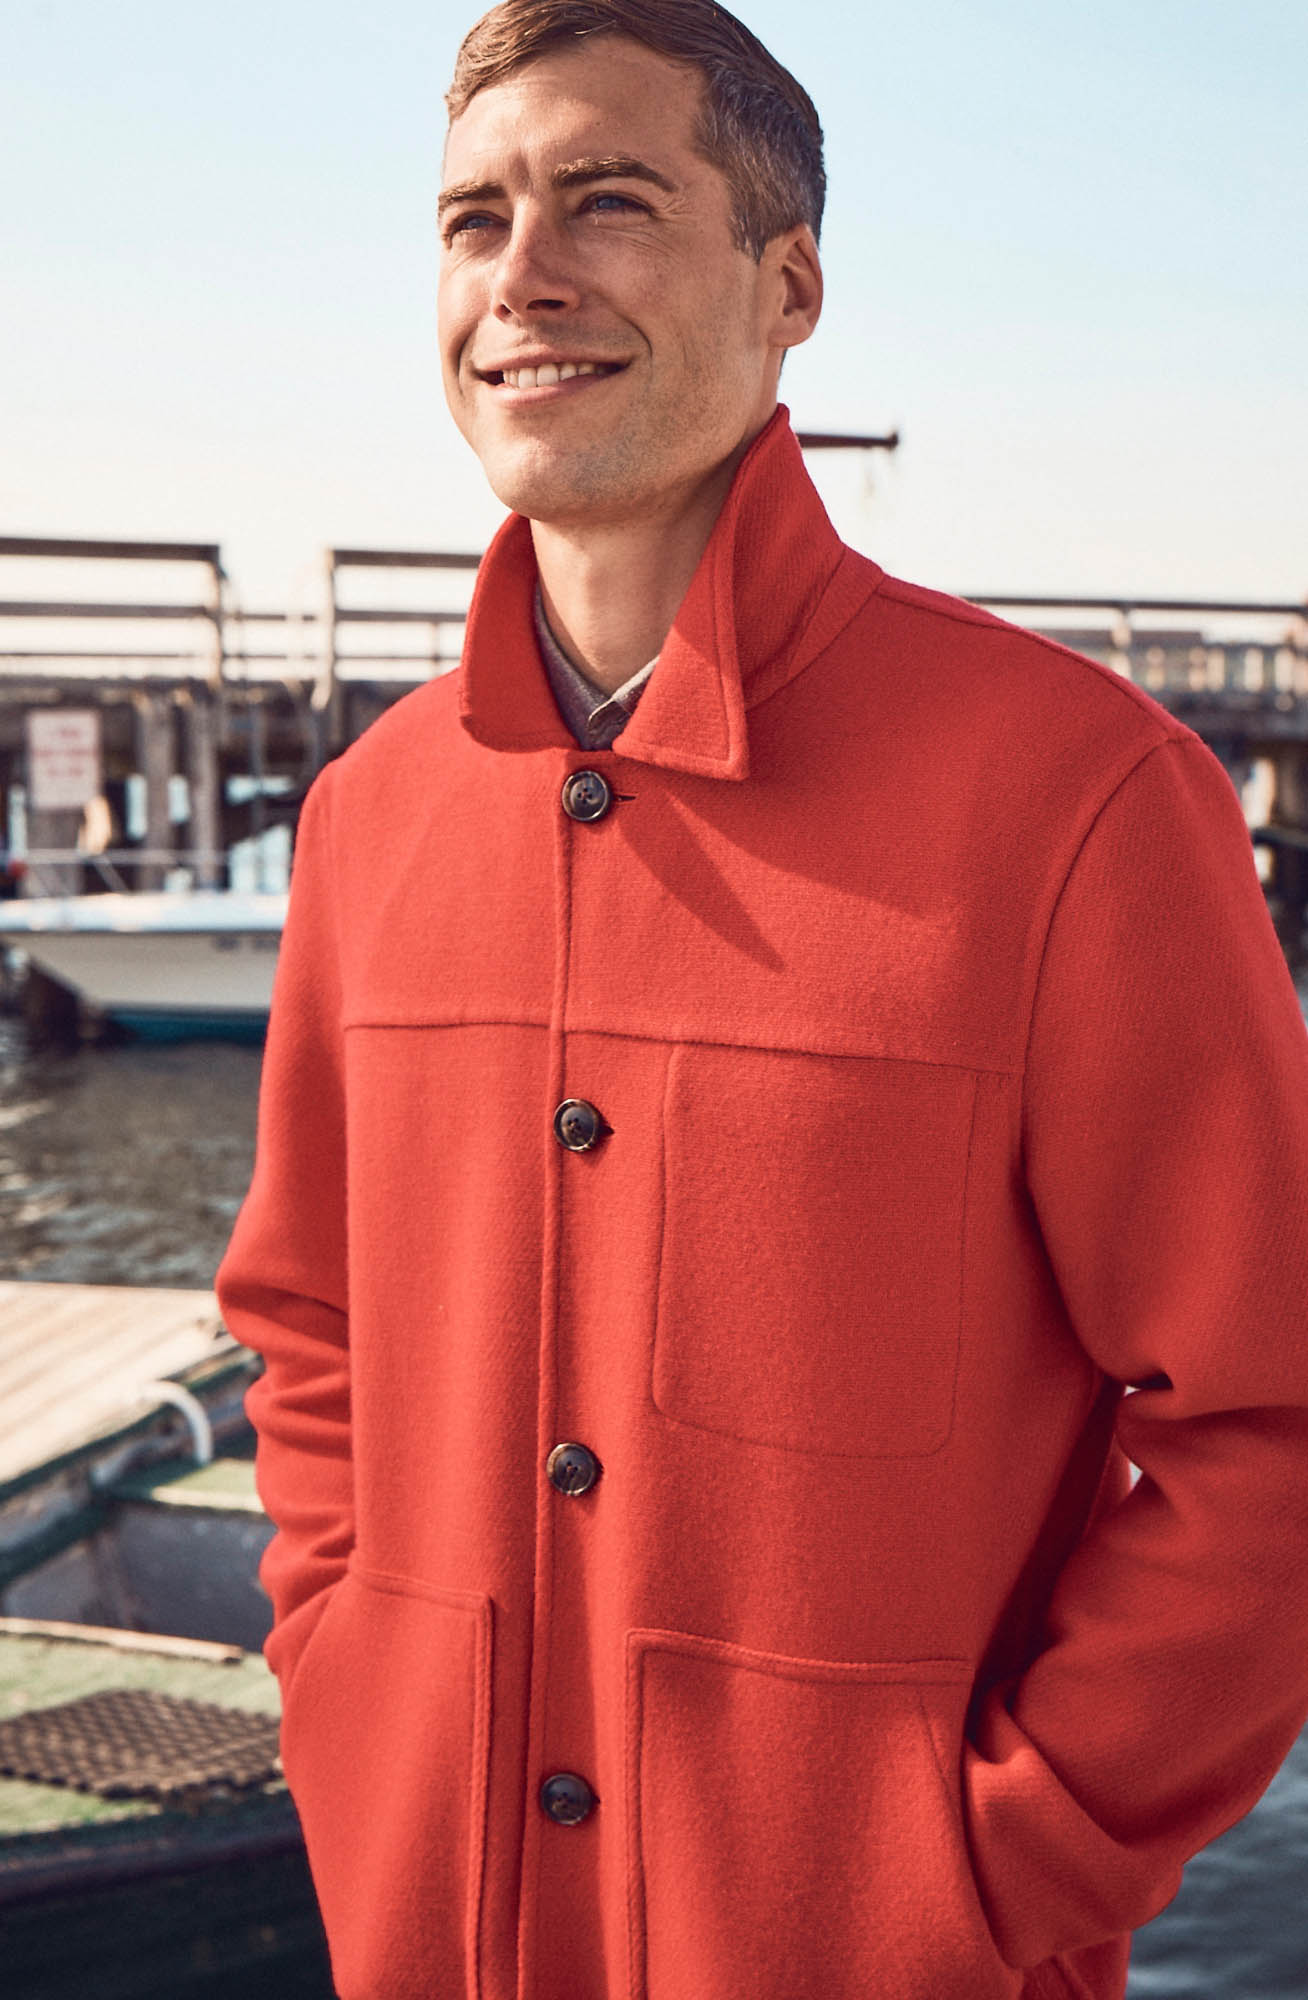 Brandon Sewall smiling in a red coat